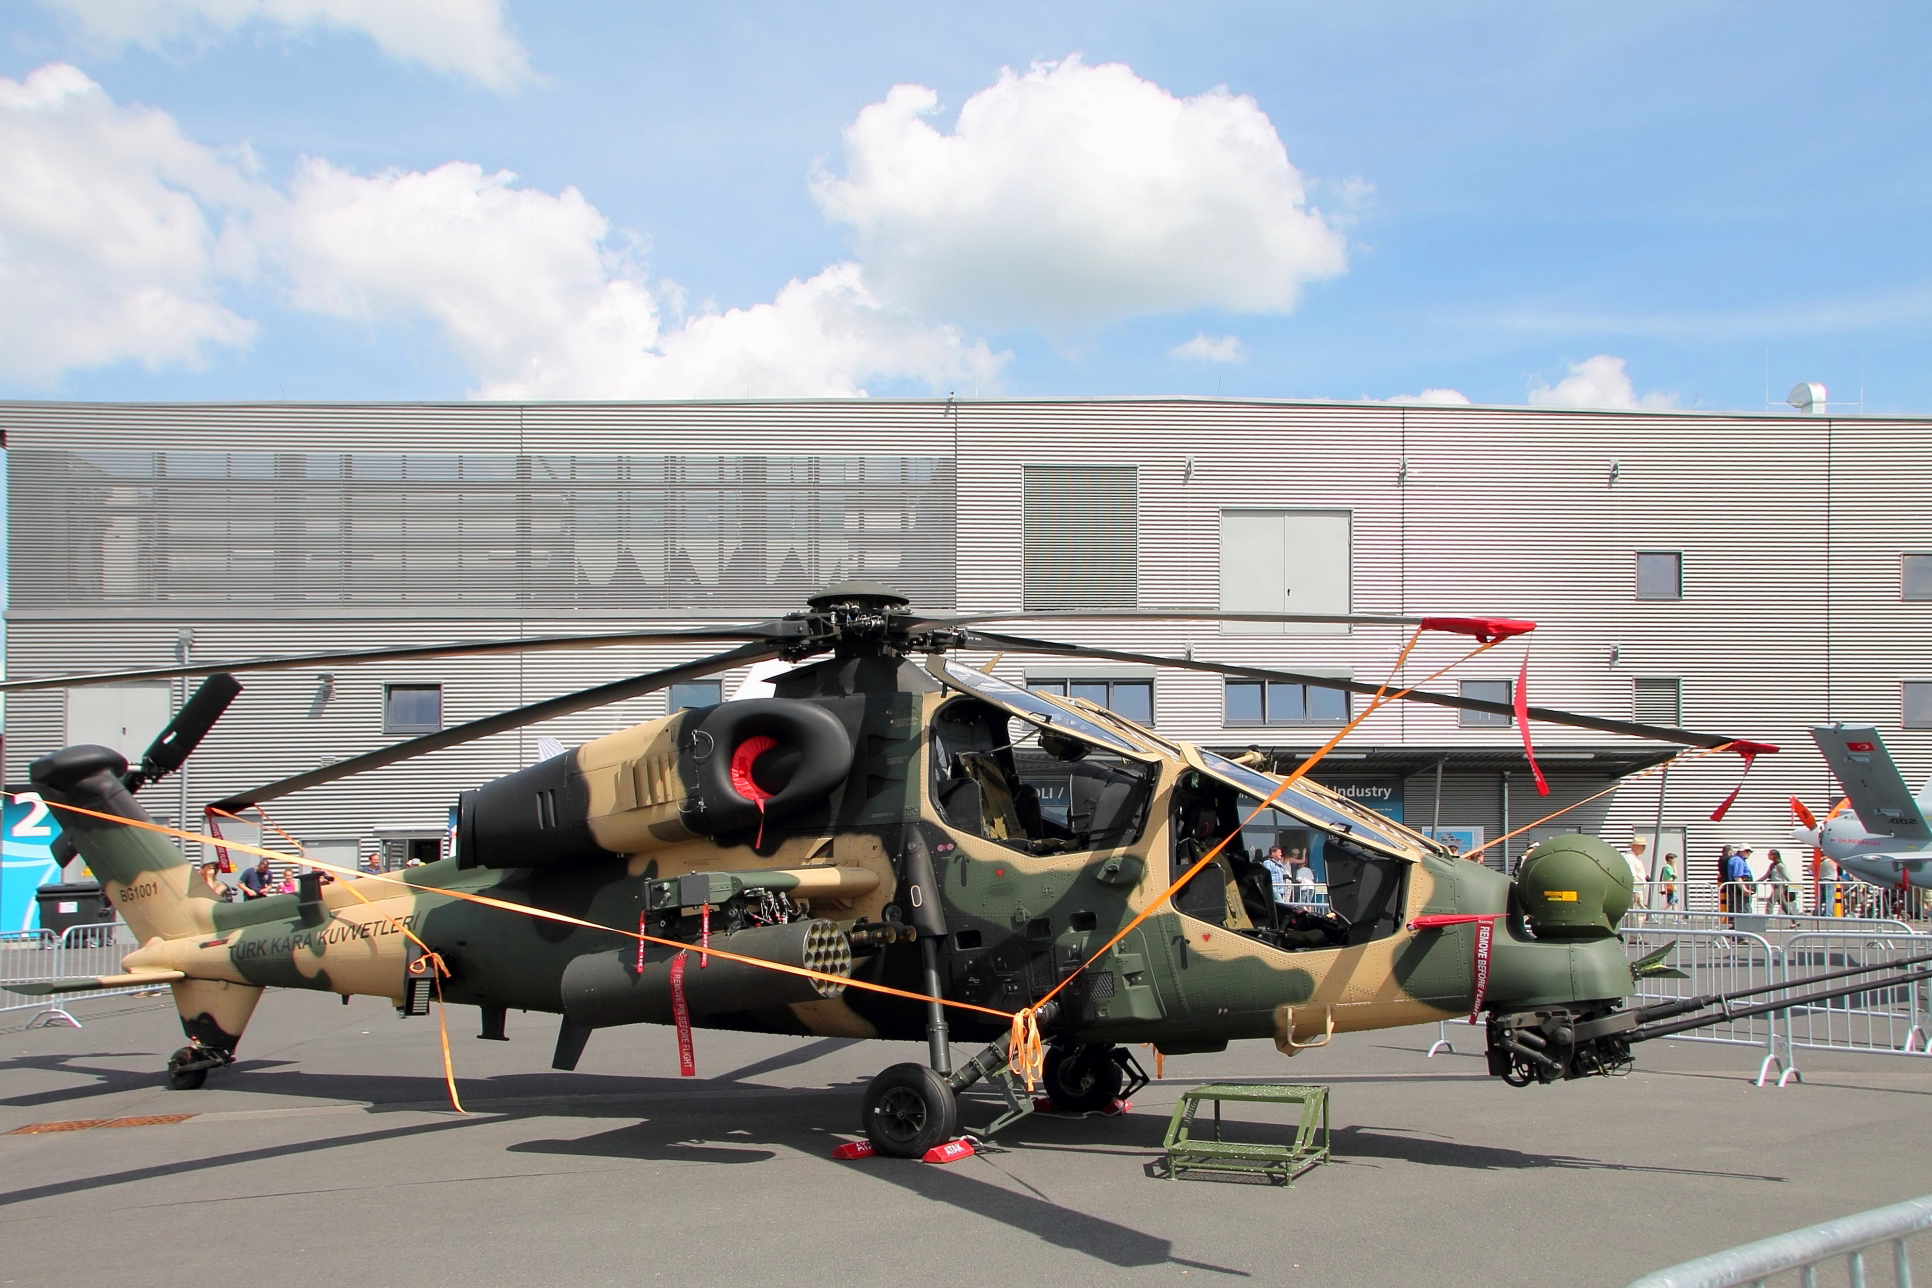 A T129 attack helicopter, based on the Augusta A129.